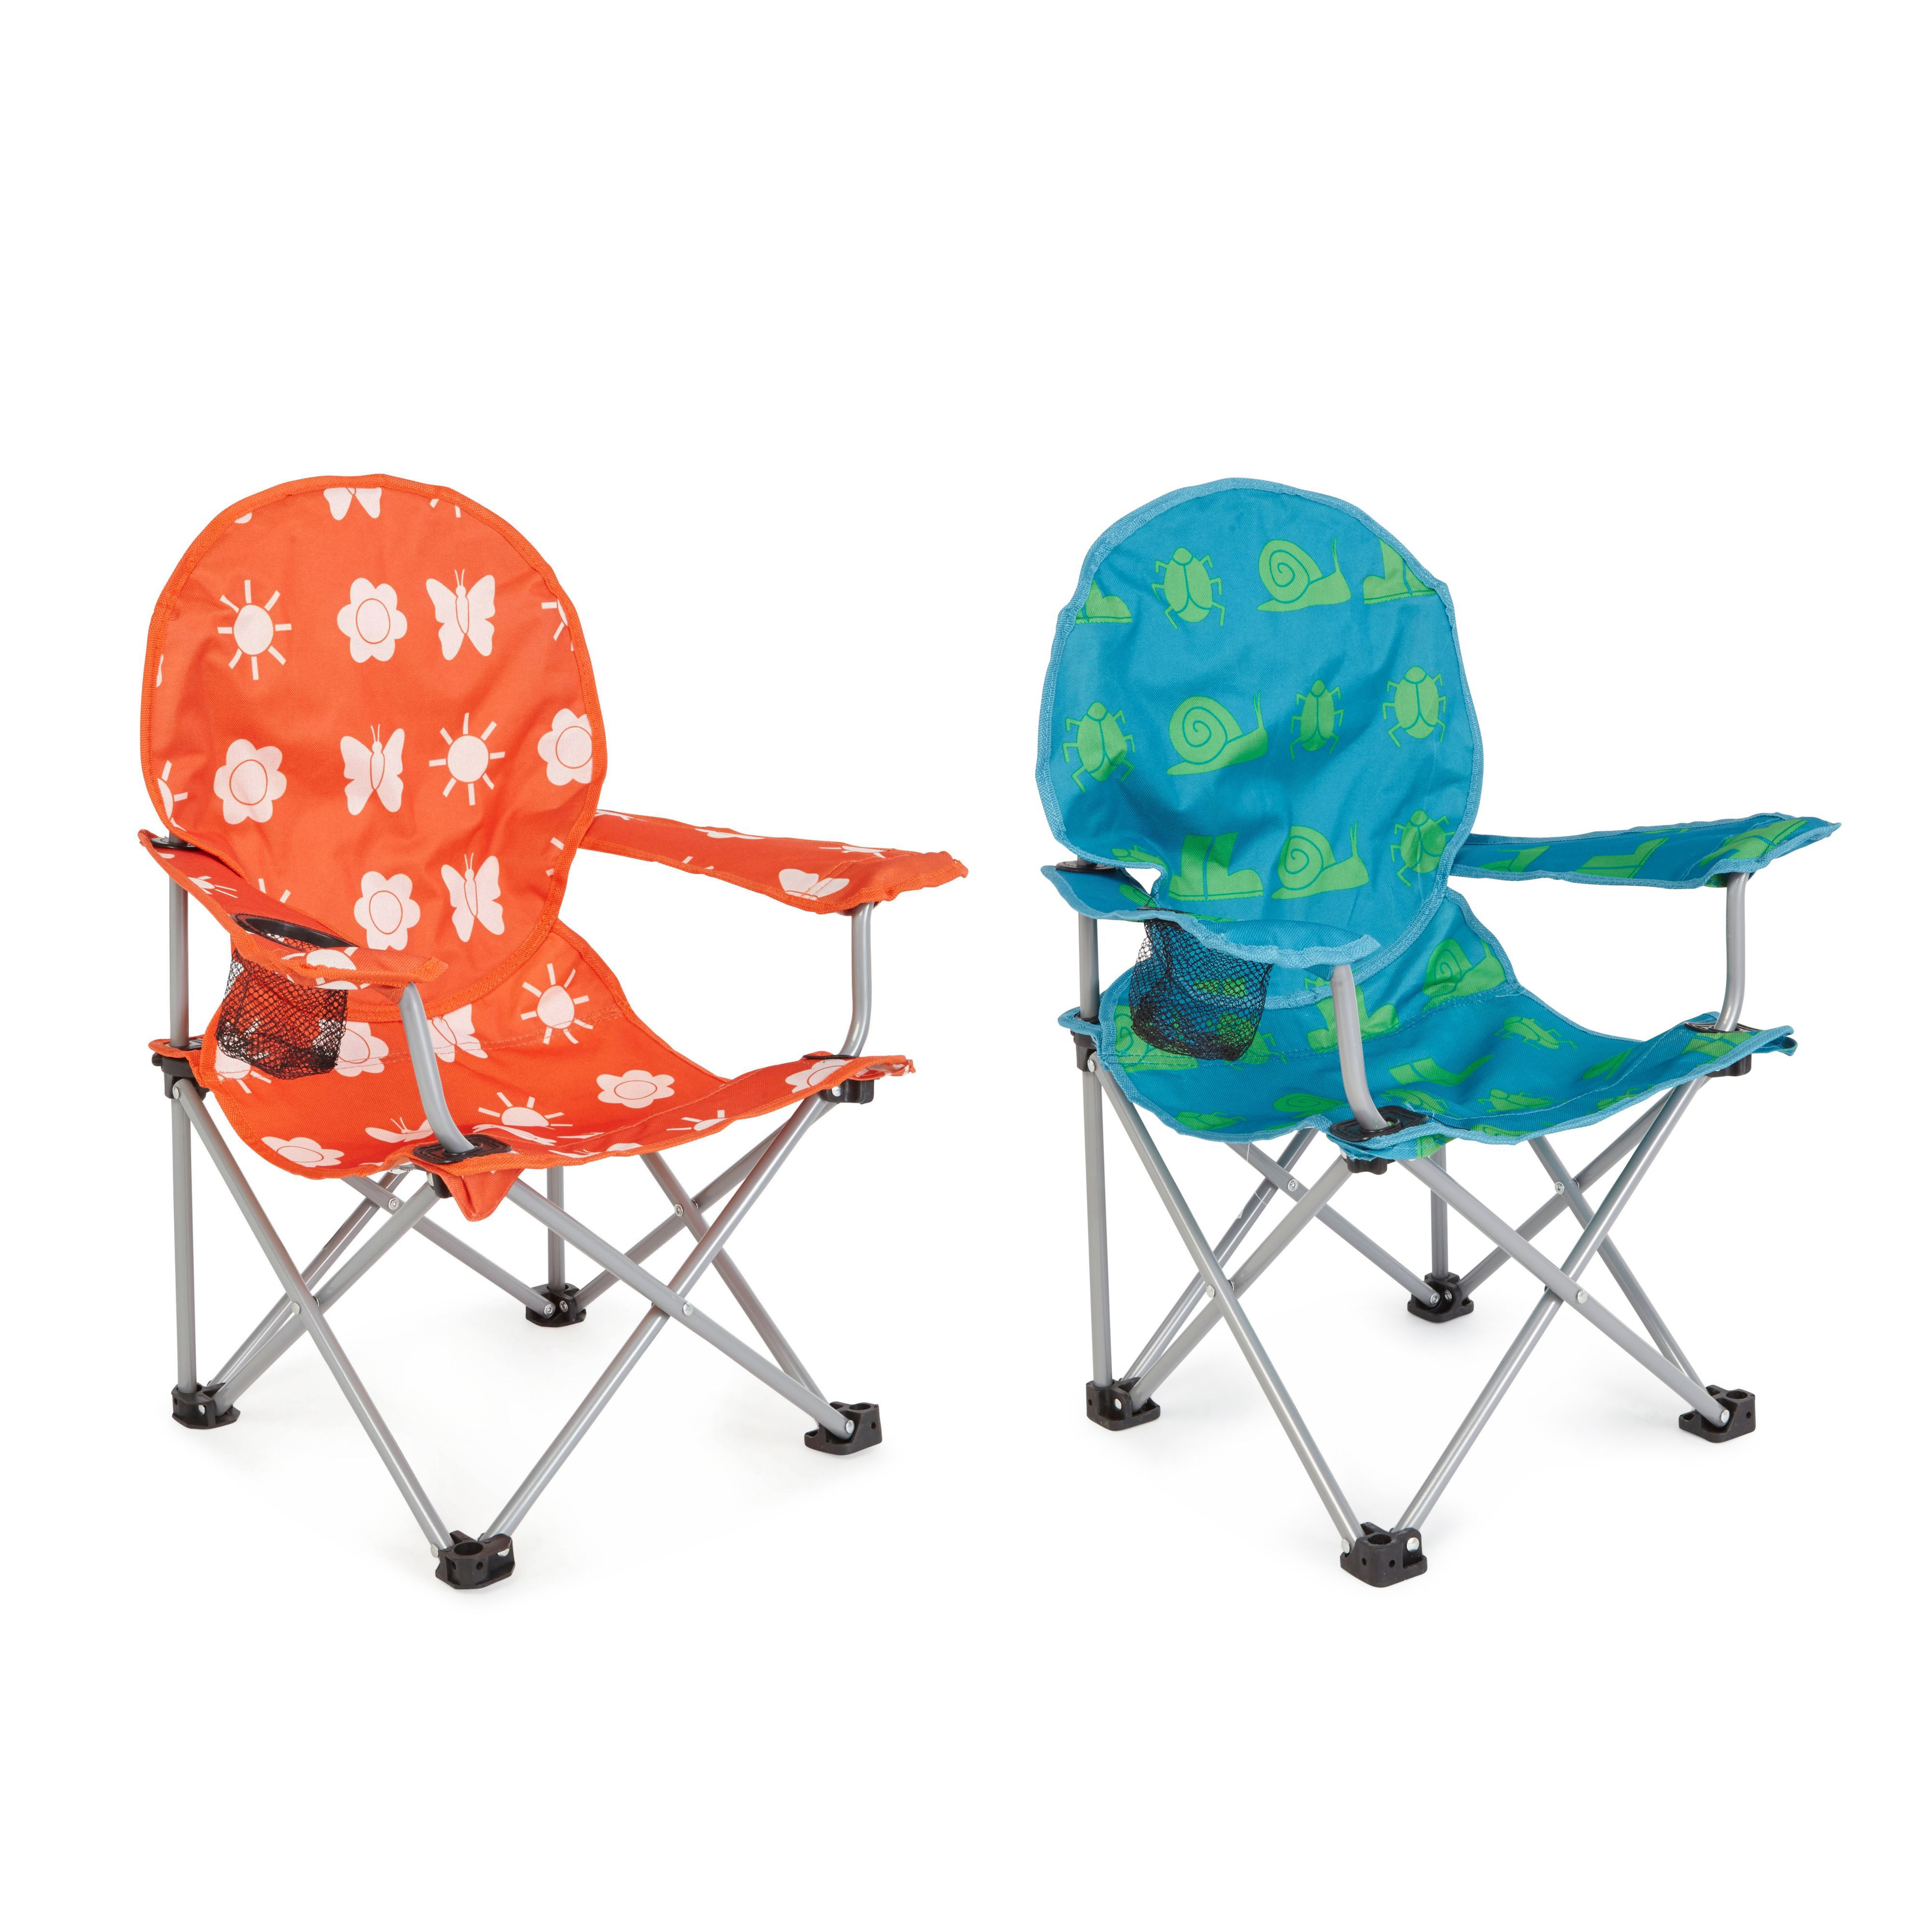 Molloy Patterned Metal Kids Camping Chair Departments